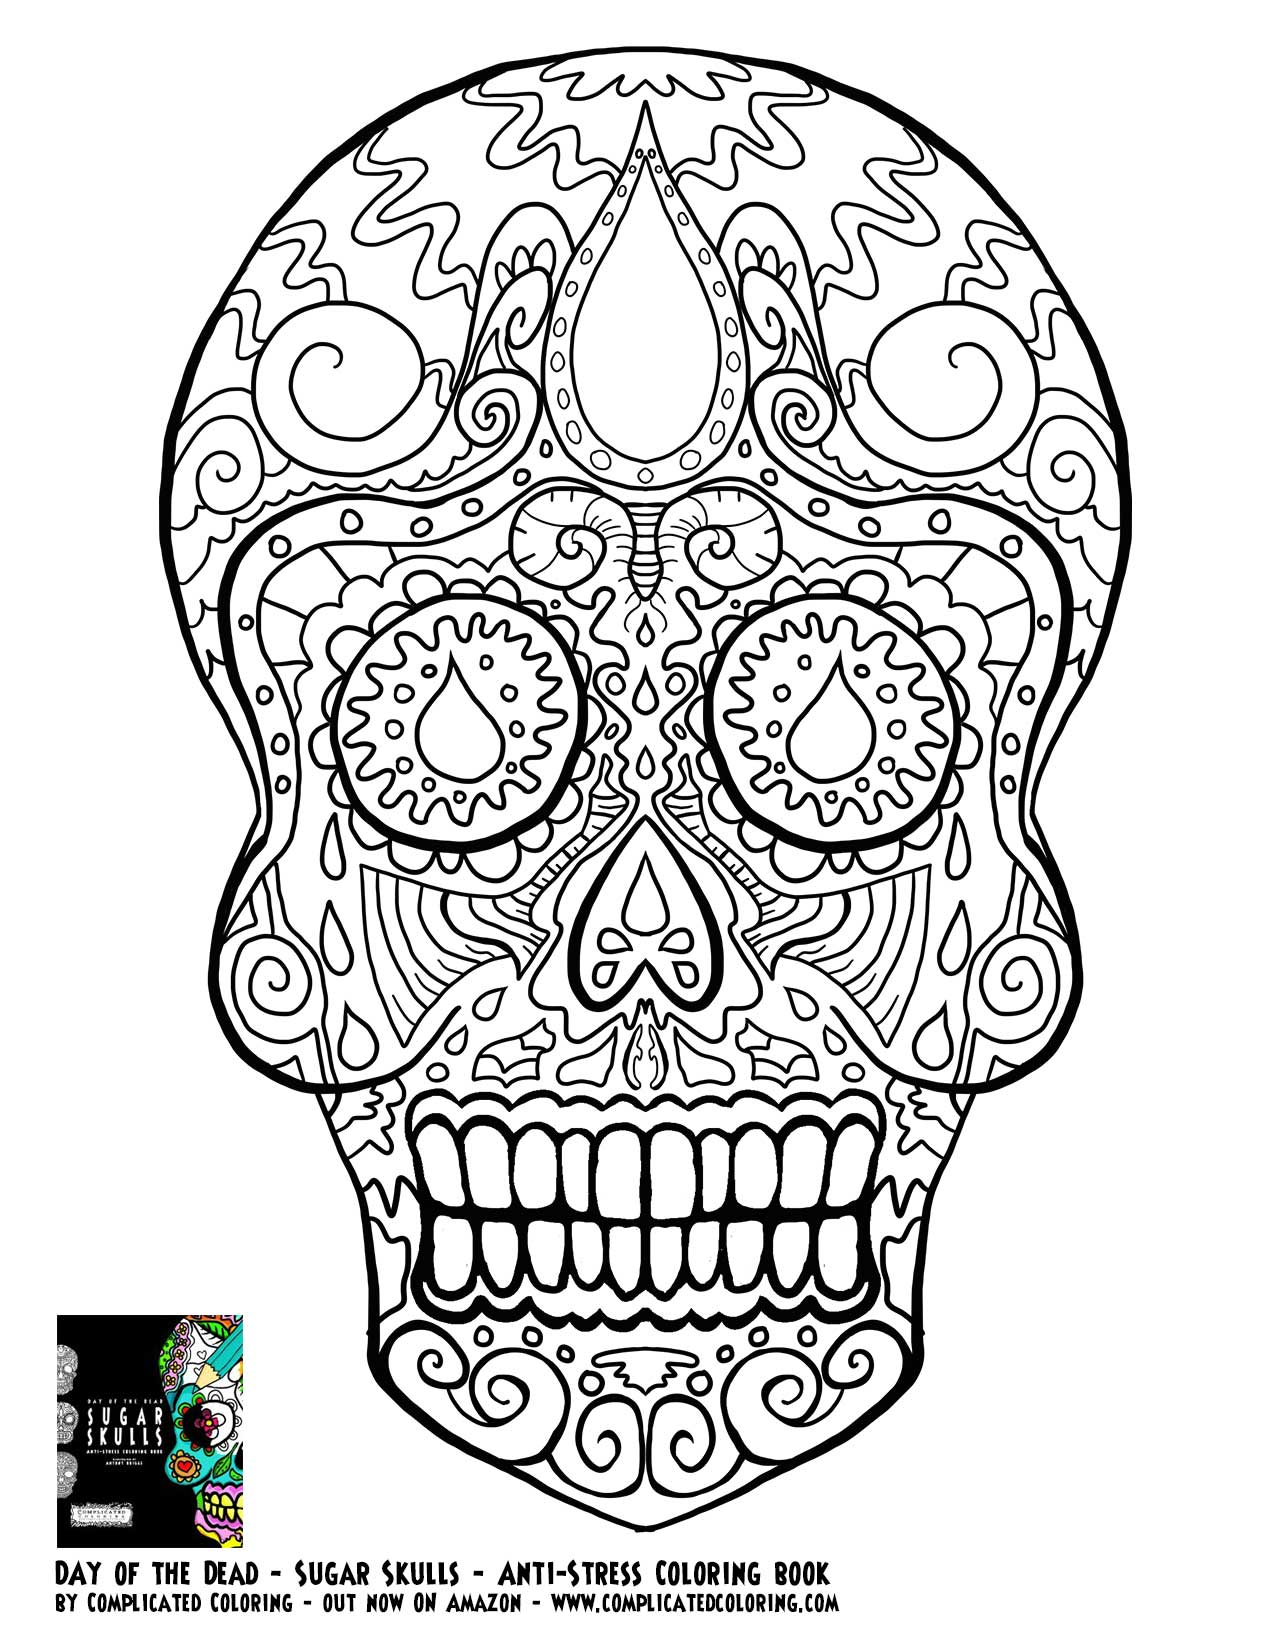 day of the dead skull coloring page free skulls day of the dead coloring pages adult coloring skull page of the day dead